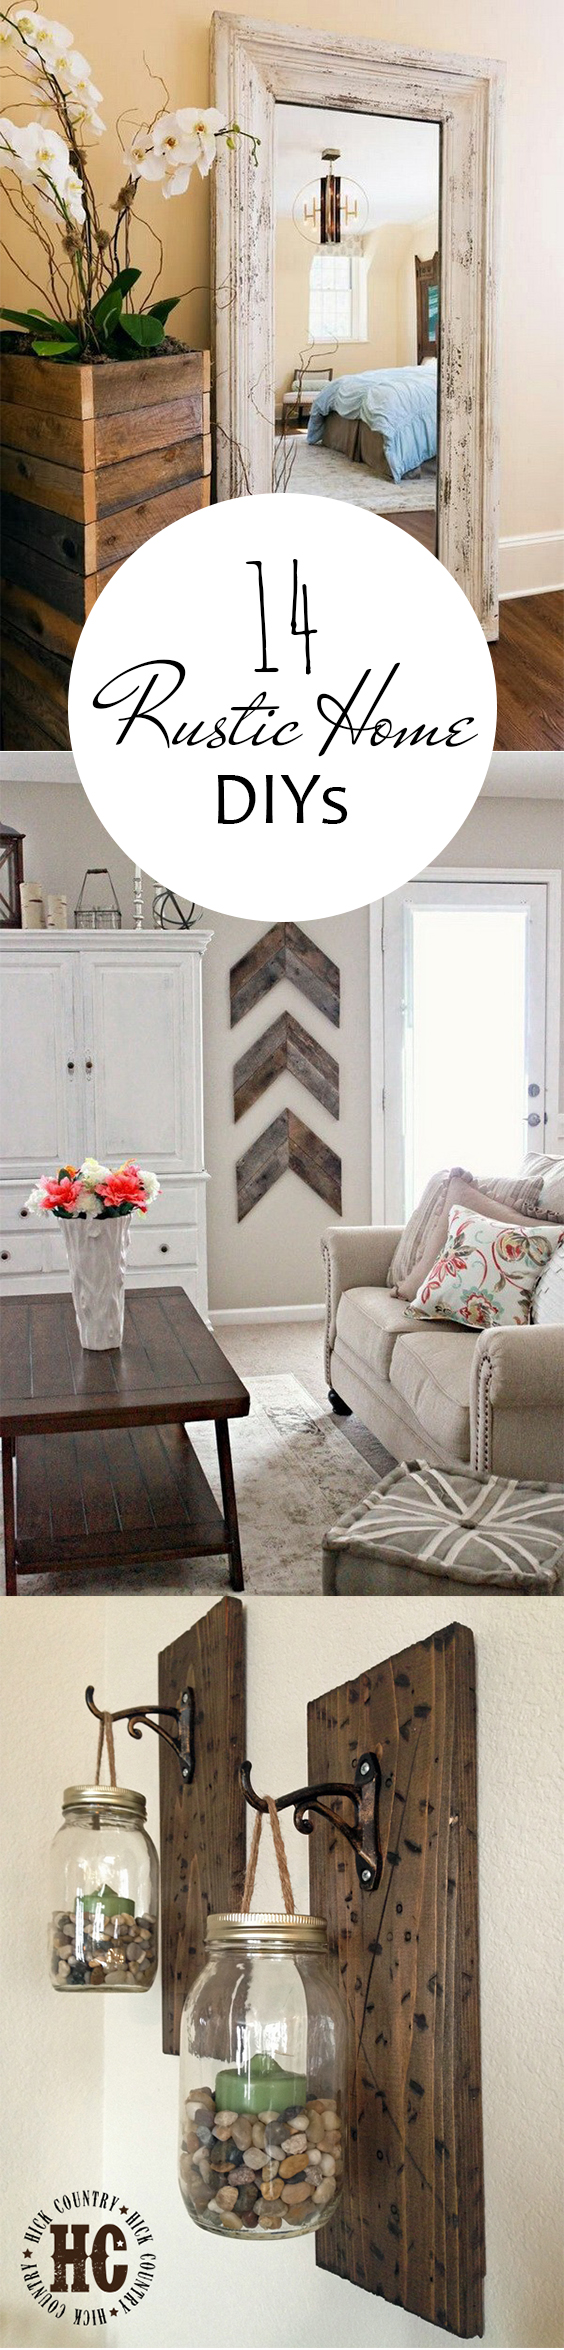 DIY projects, easy DIY, rustic home, farmhouse DIY projects, popular pin, DIY home, DIY rustic home decor, DIY farmhouse decor, Easy Farmhouse Inspired DIY Projects, DIY projects for the Home, Easy DIY, Simple DIY Projects. #diyhome #diyhomedecor #homedecor #rustic #rustichomedecor #easyhomeDIY